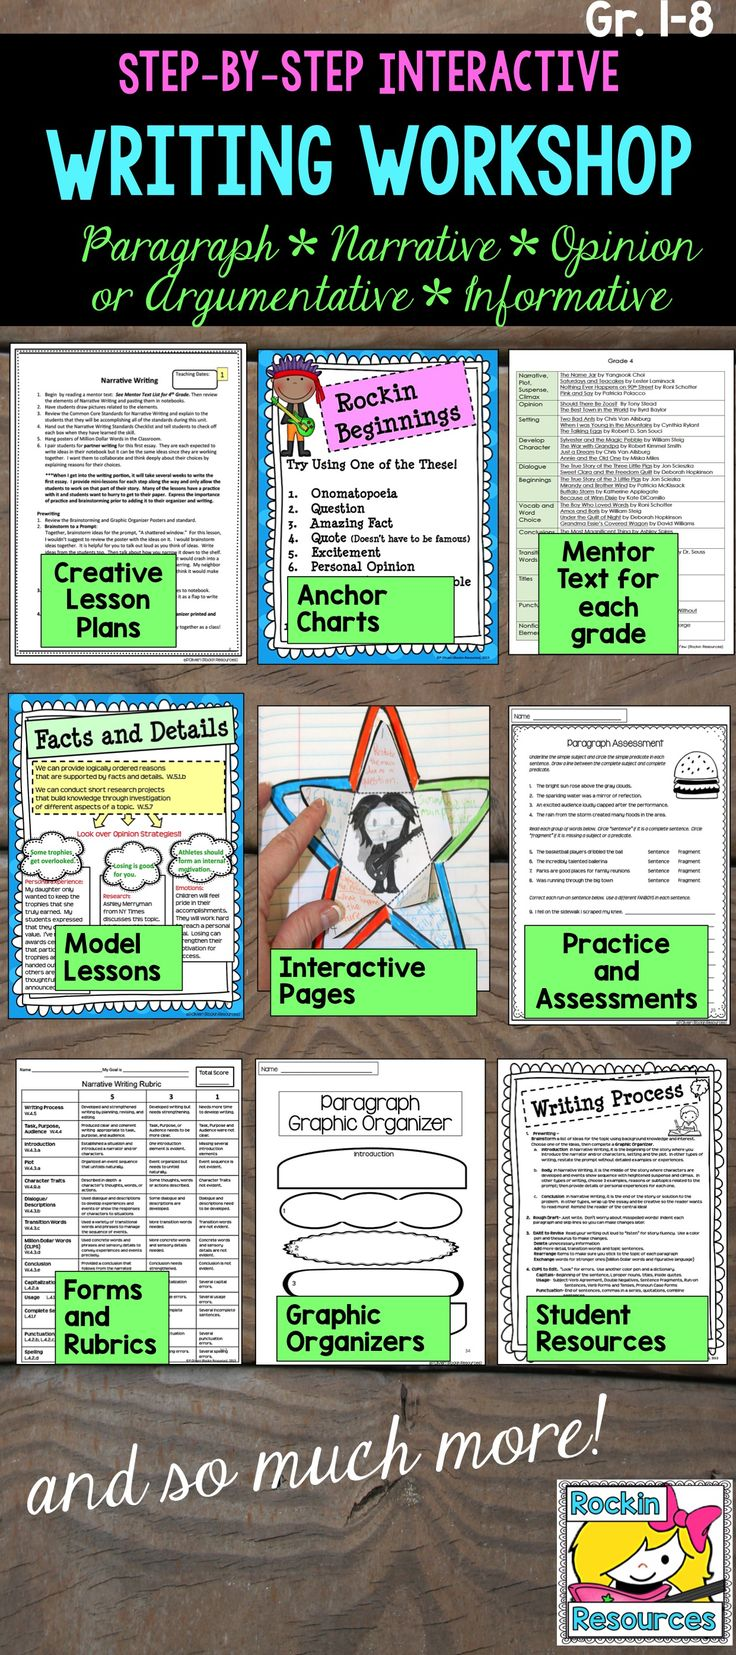 This NO PREP detailed writing program will guide you through a year of writing lessons. It is a COMPLETE writing workshop with step-by-step mini lessons. Every lesson builds upon the previous skill within one piece of writing, which give students a thorough understanding of how to put a piece of writing together. There are separate bundles aligned for each Grade 1-8 and includes a Mentor Text Booklet with ALL grade levels. The lesson plans are filled with directions, special tips and…